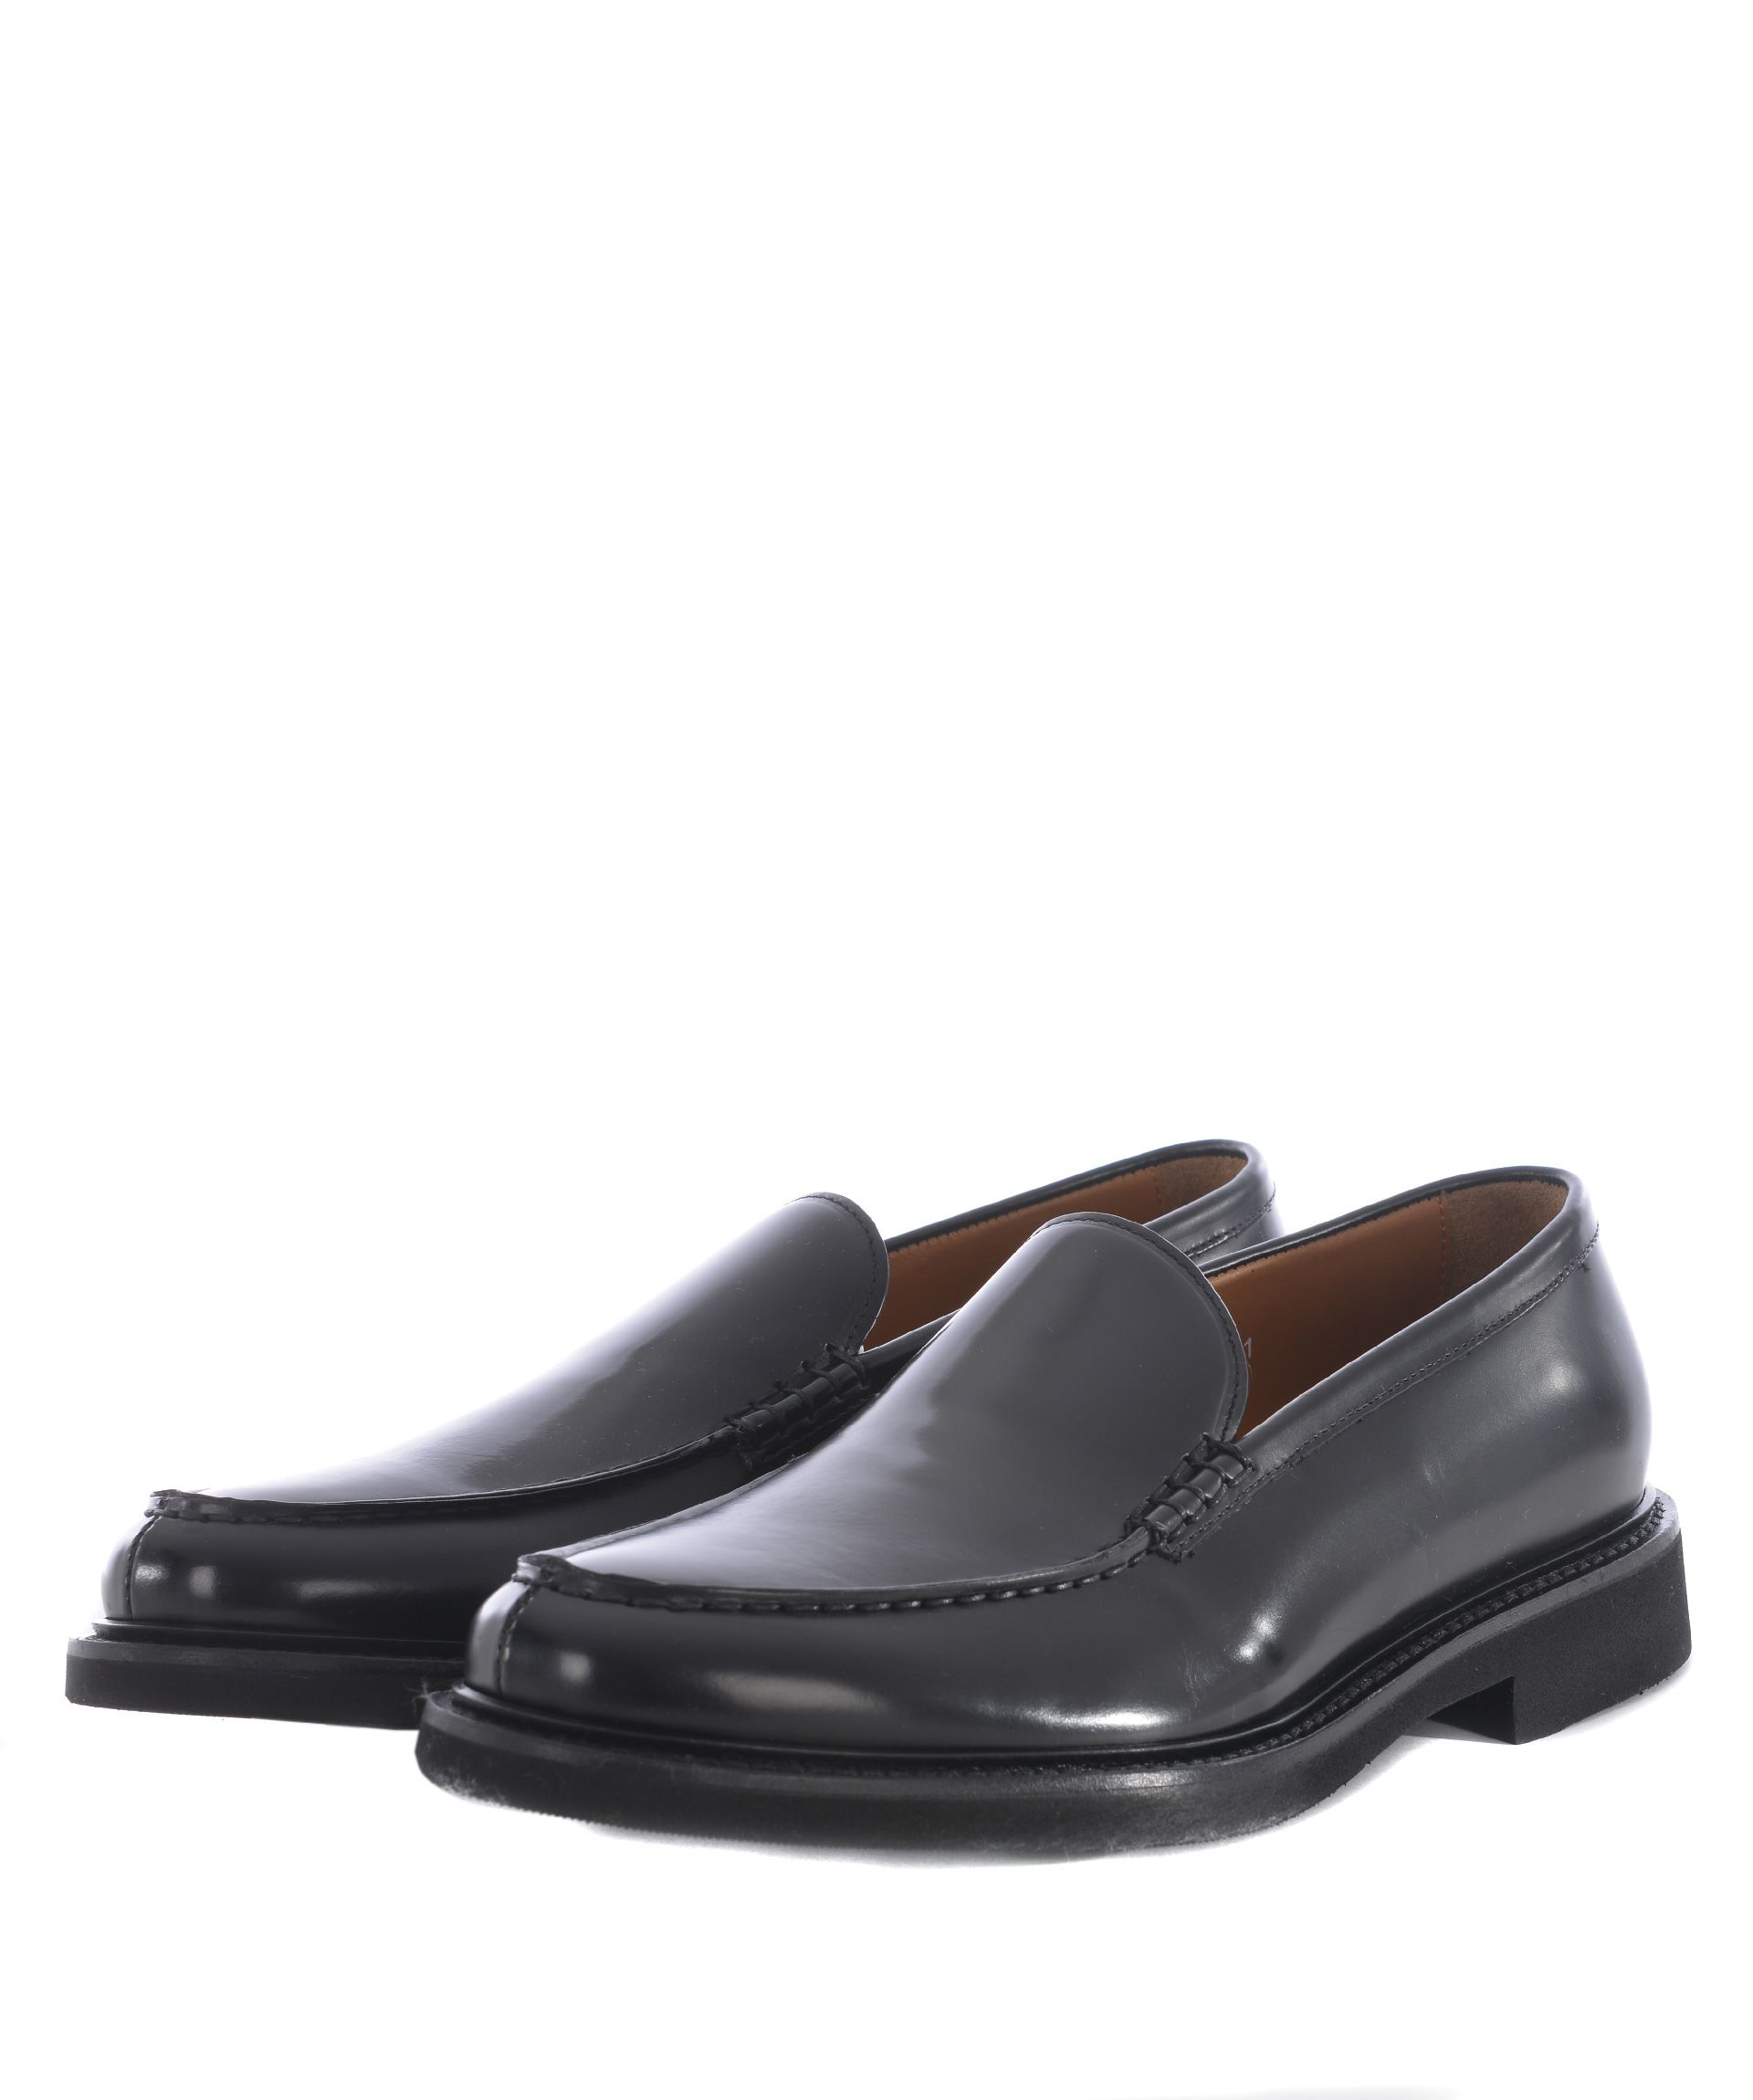 Doucals Round Toe Loafers